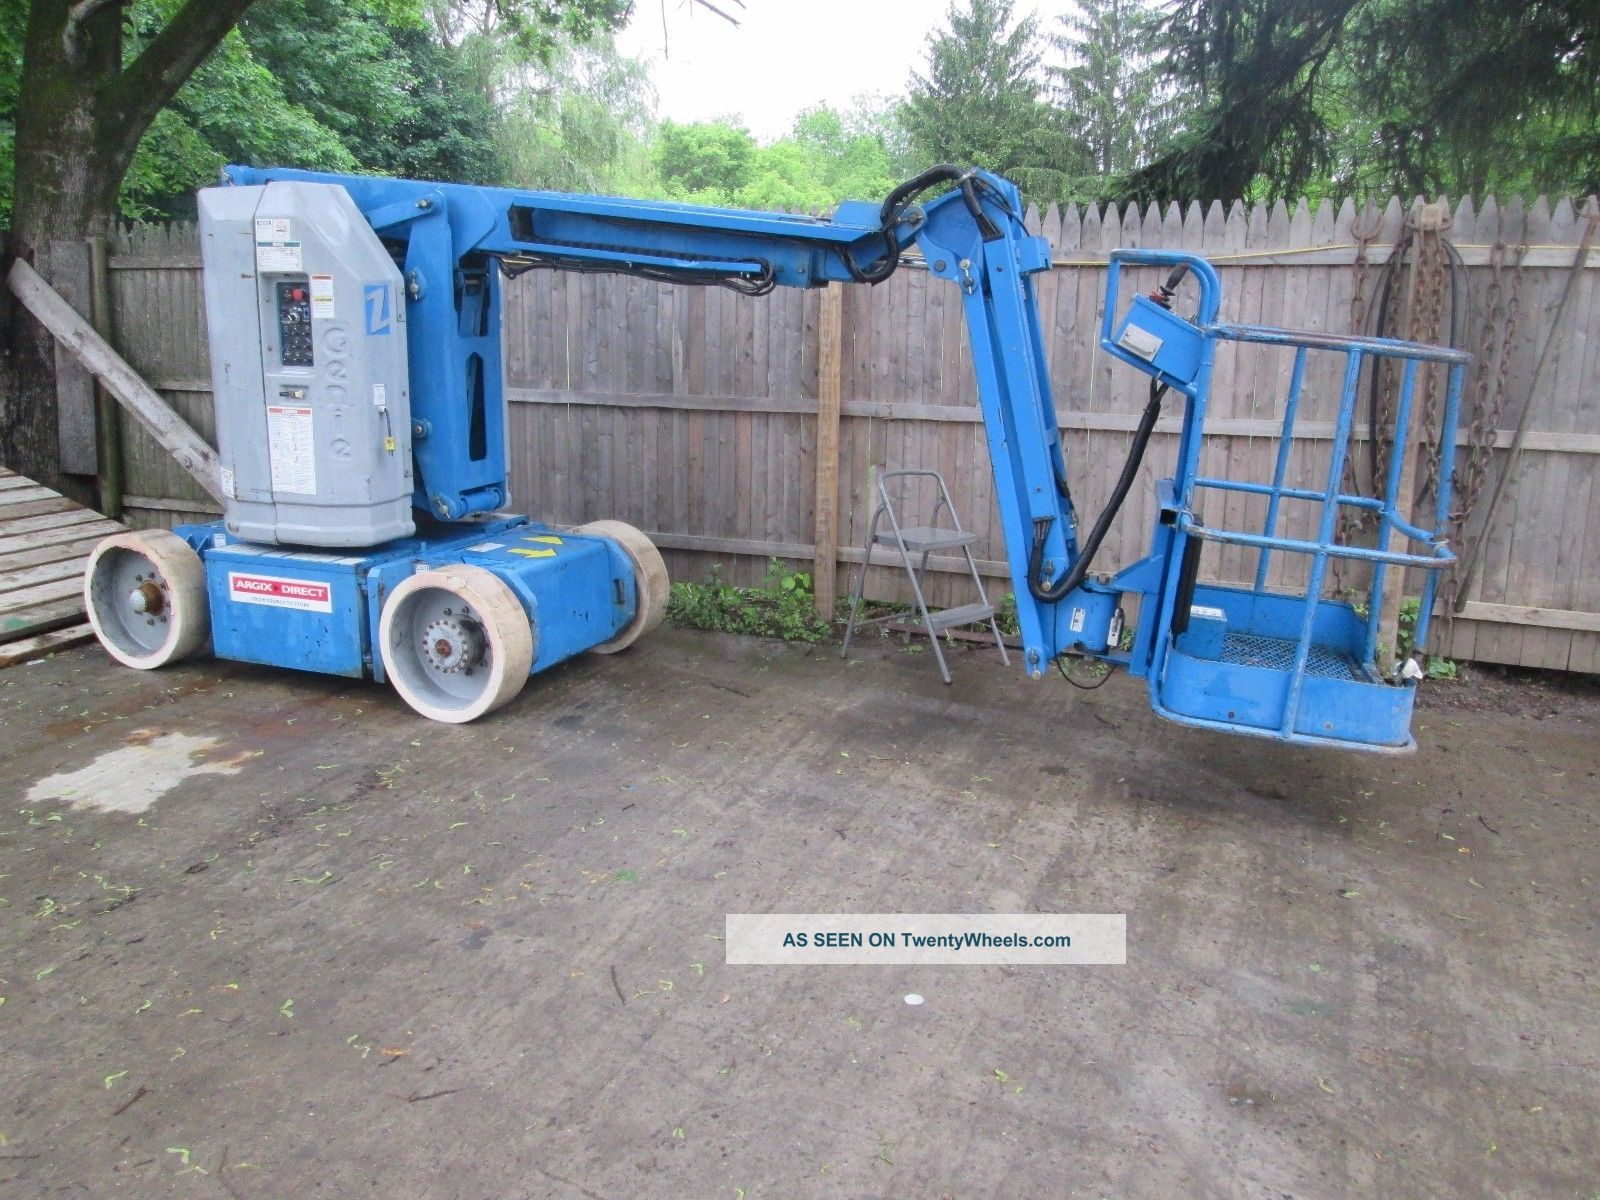 Genie Z3020n Man Lift Scissor & Boom Lifts photo